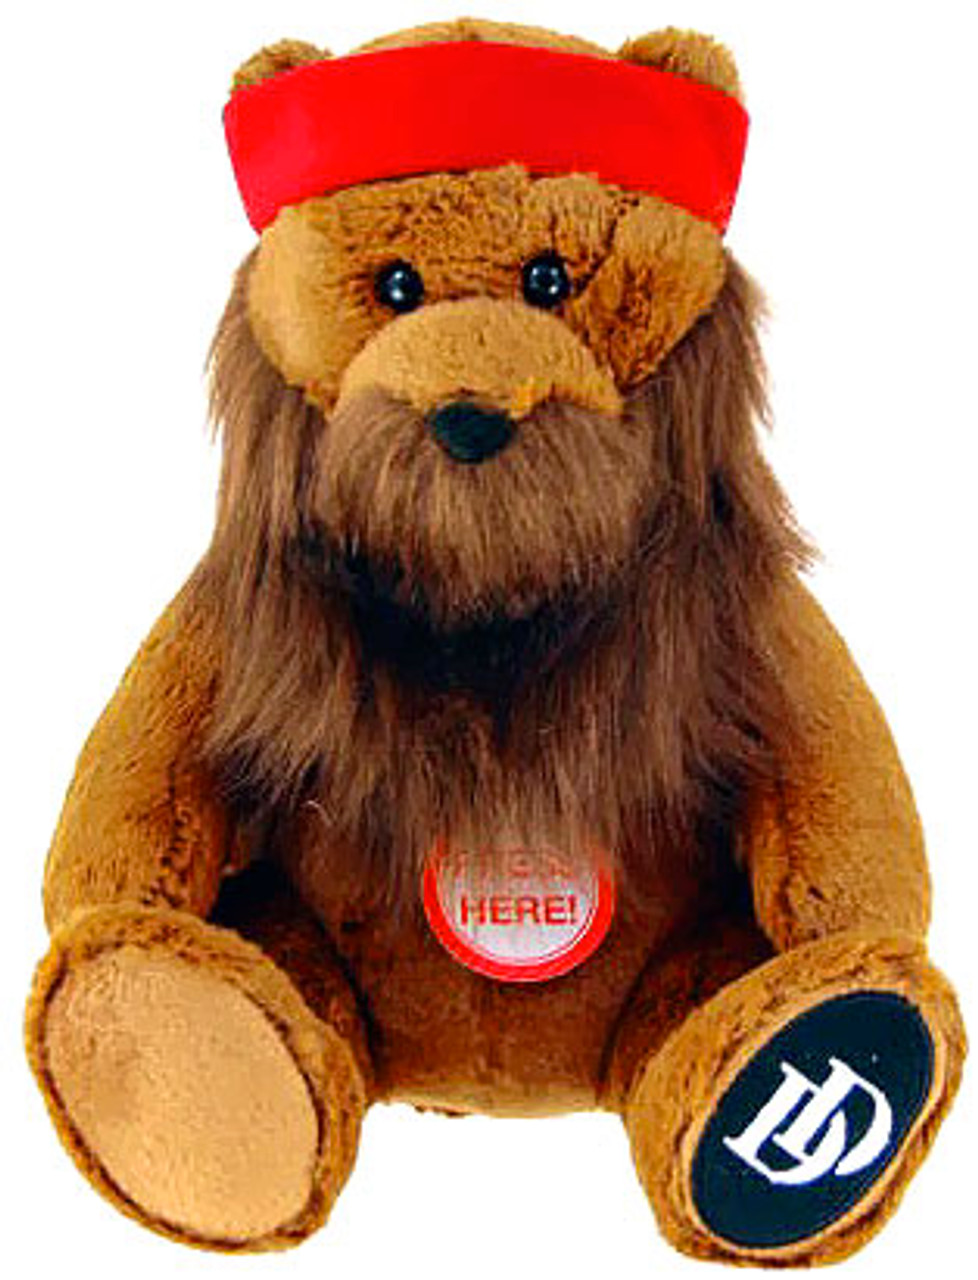 Duck Dynasty Bears with Beards Willy 8-Inch Plush [With Sound]